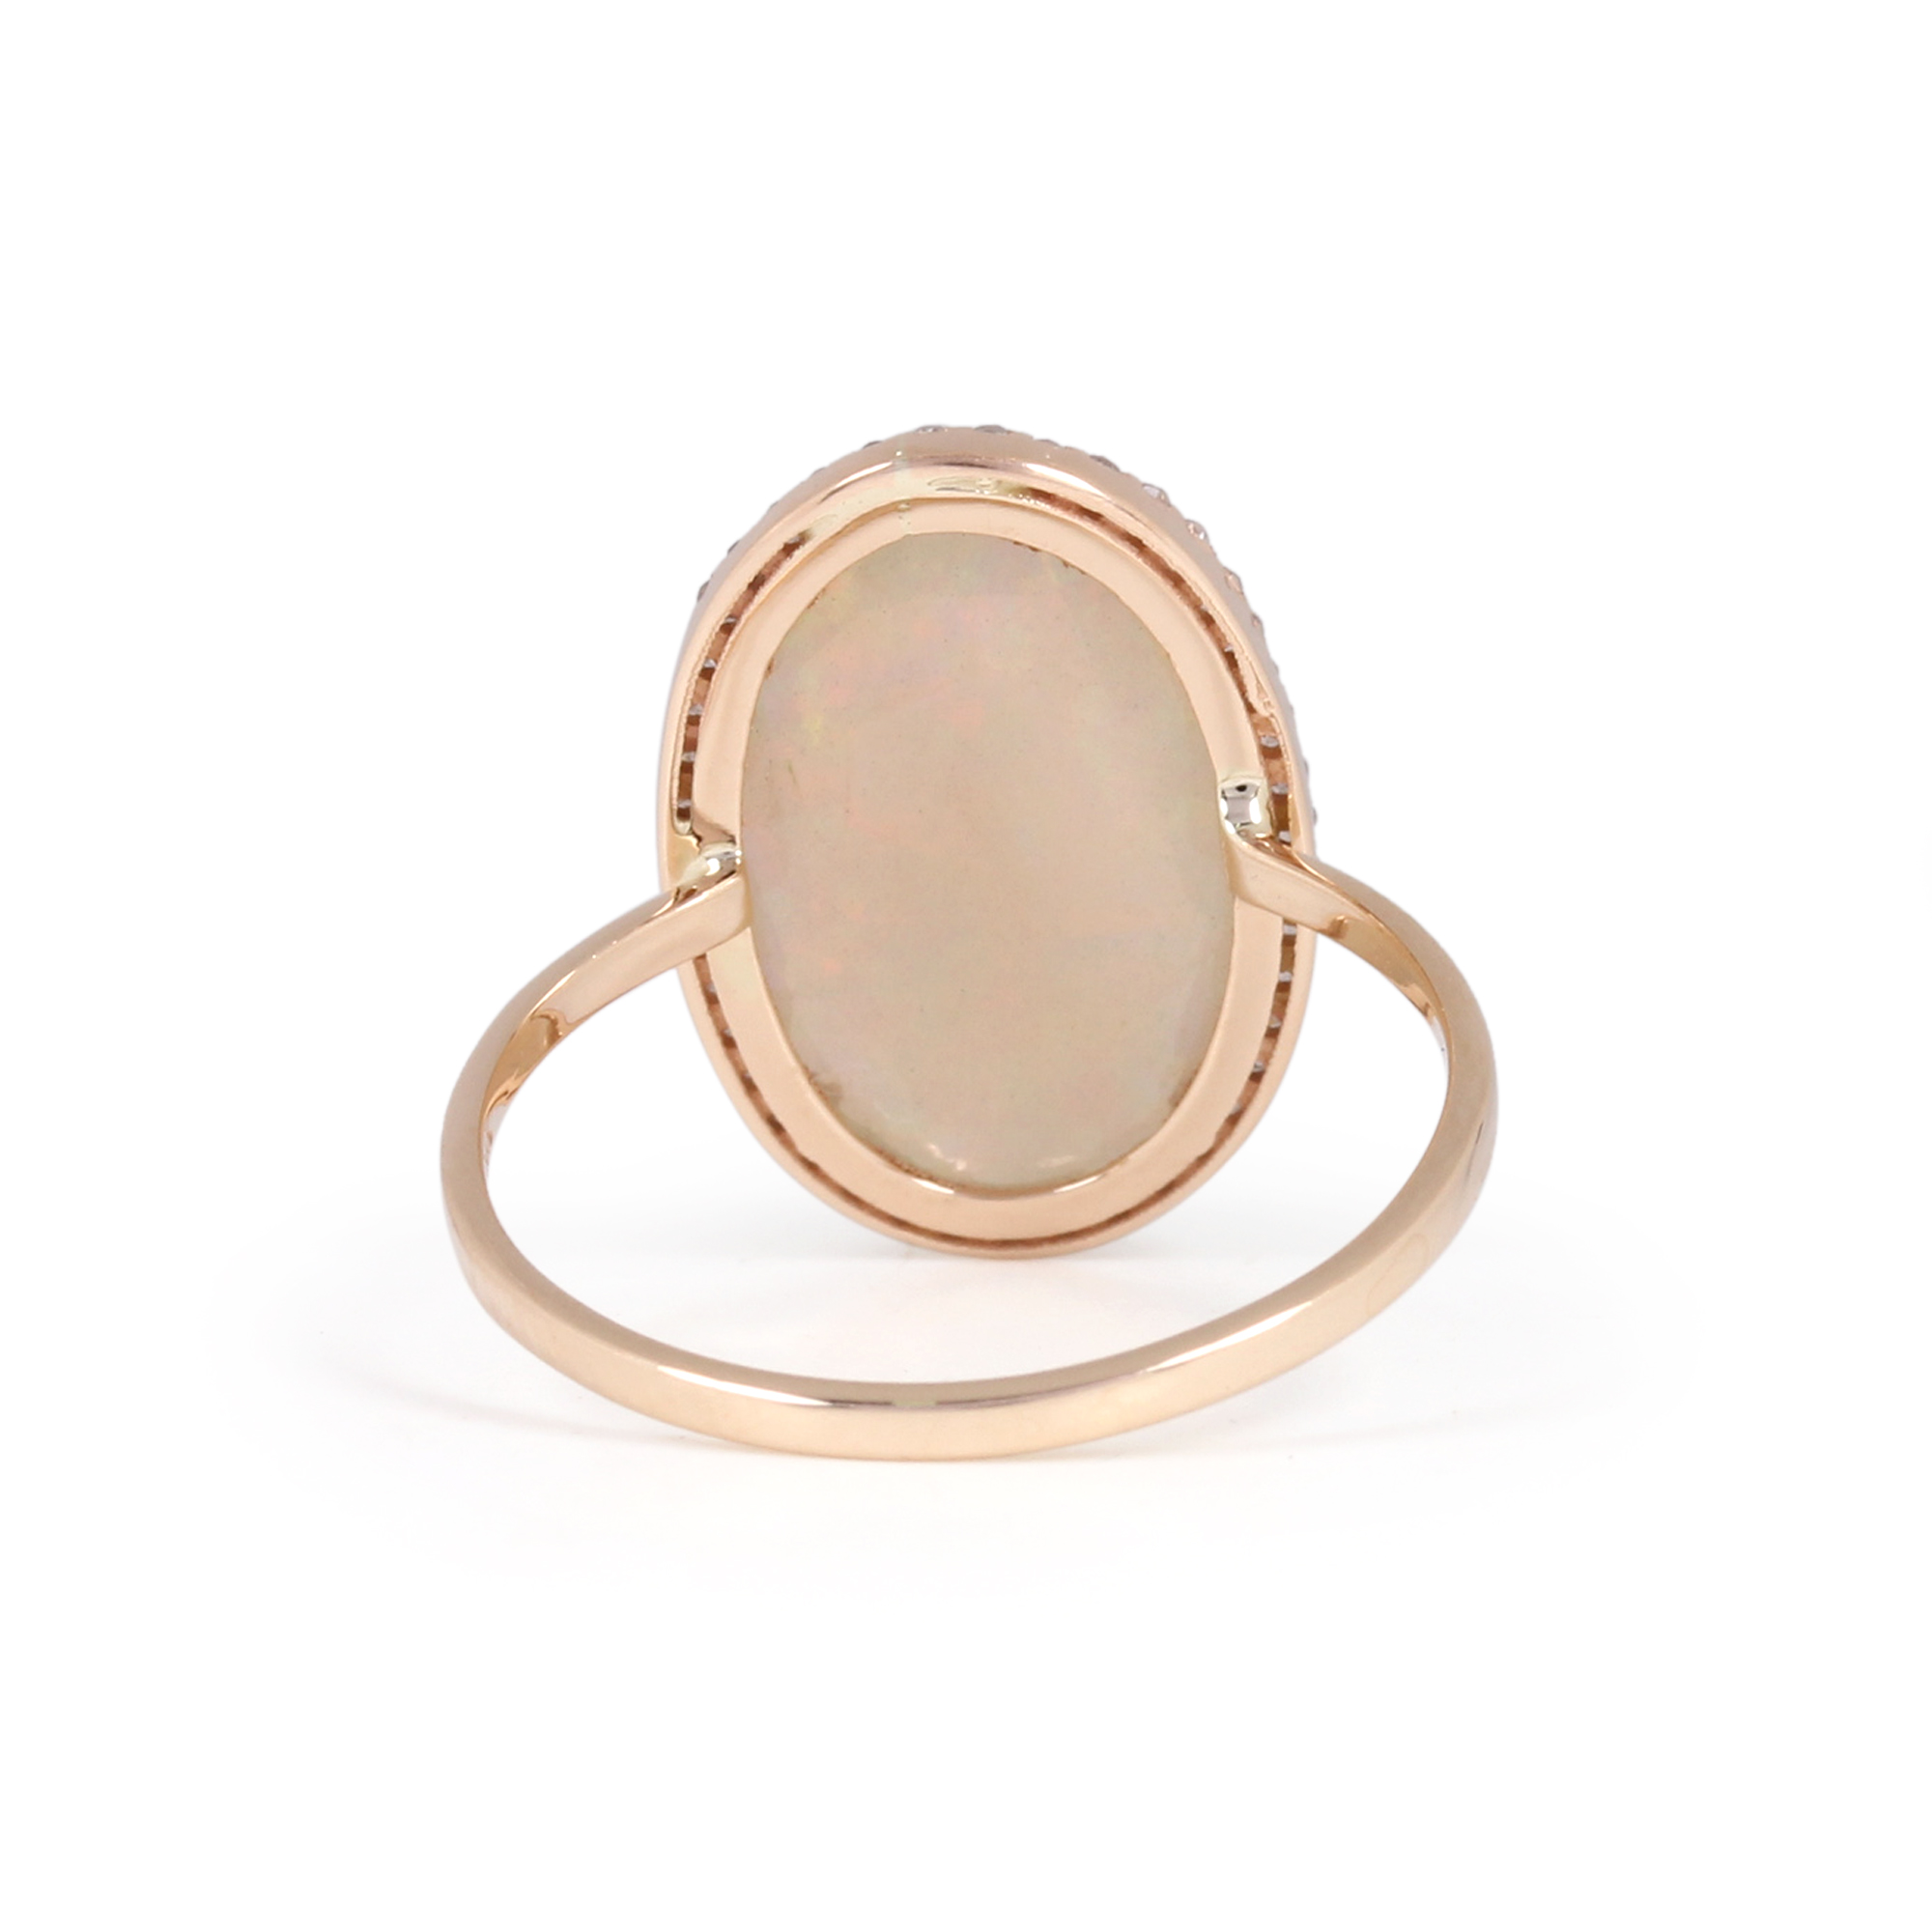 Gemstone Opal Pave Diamond Solid 14K Gold Ring Jewelry